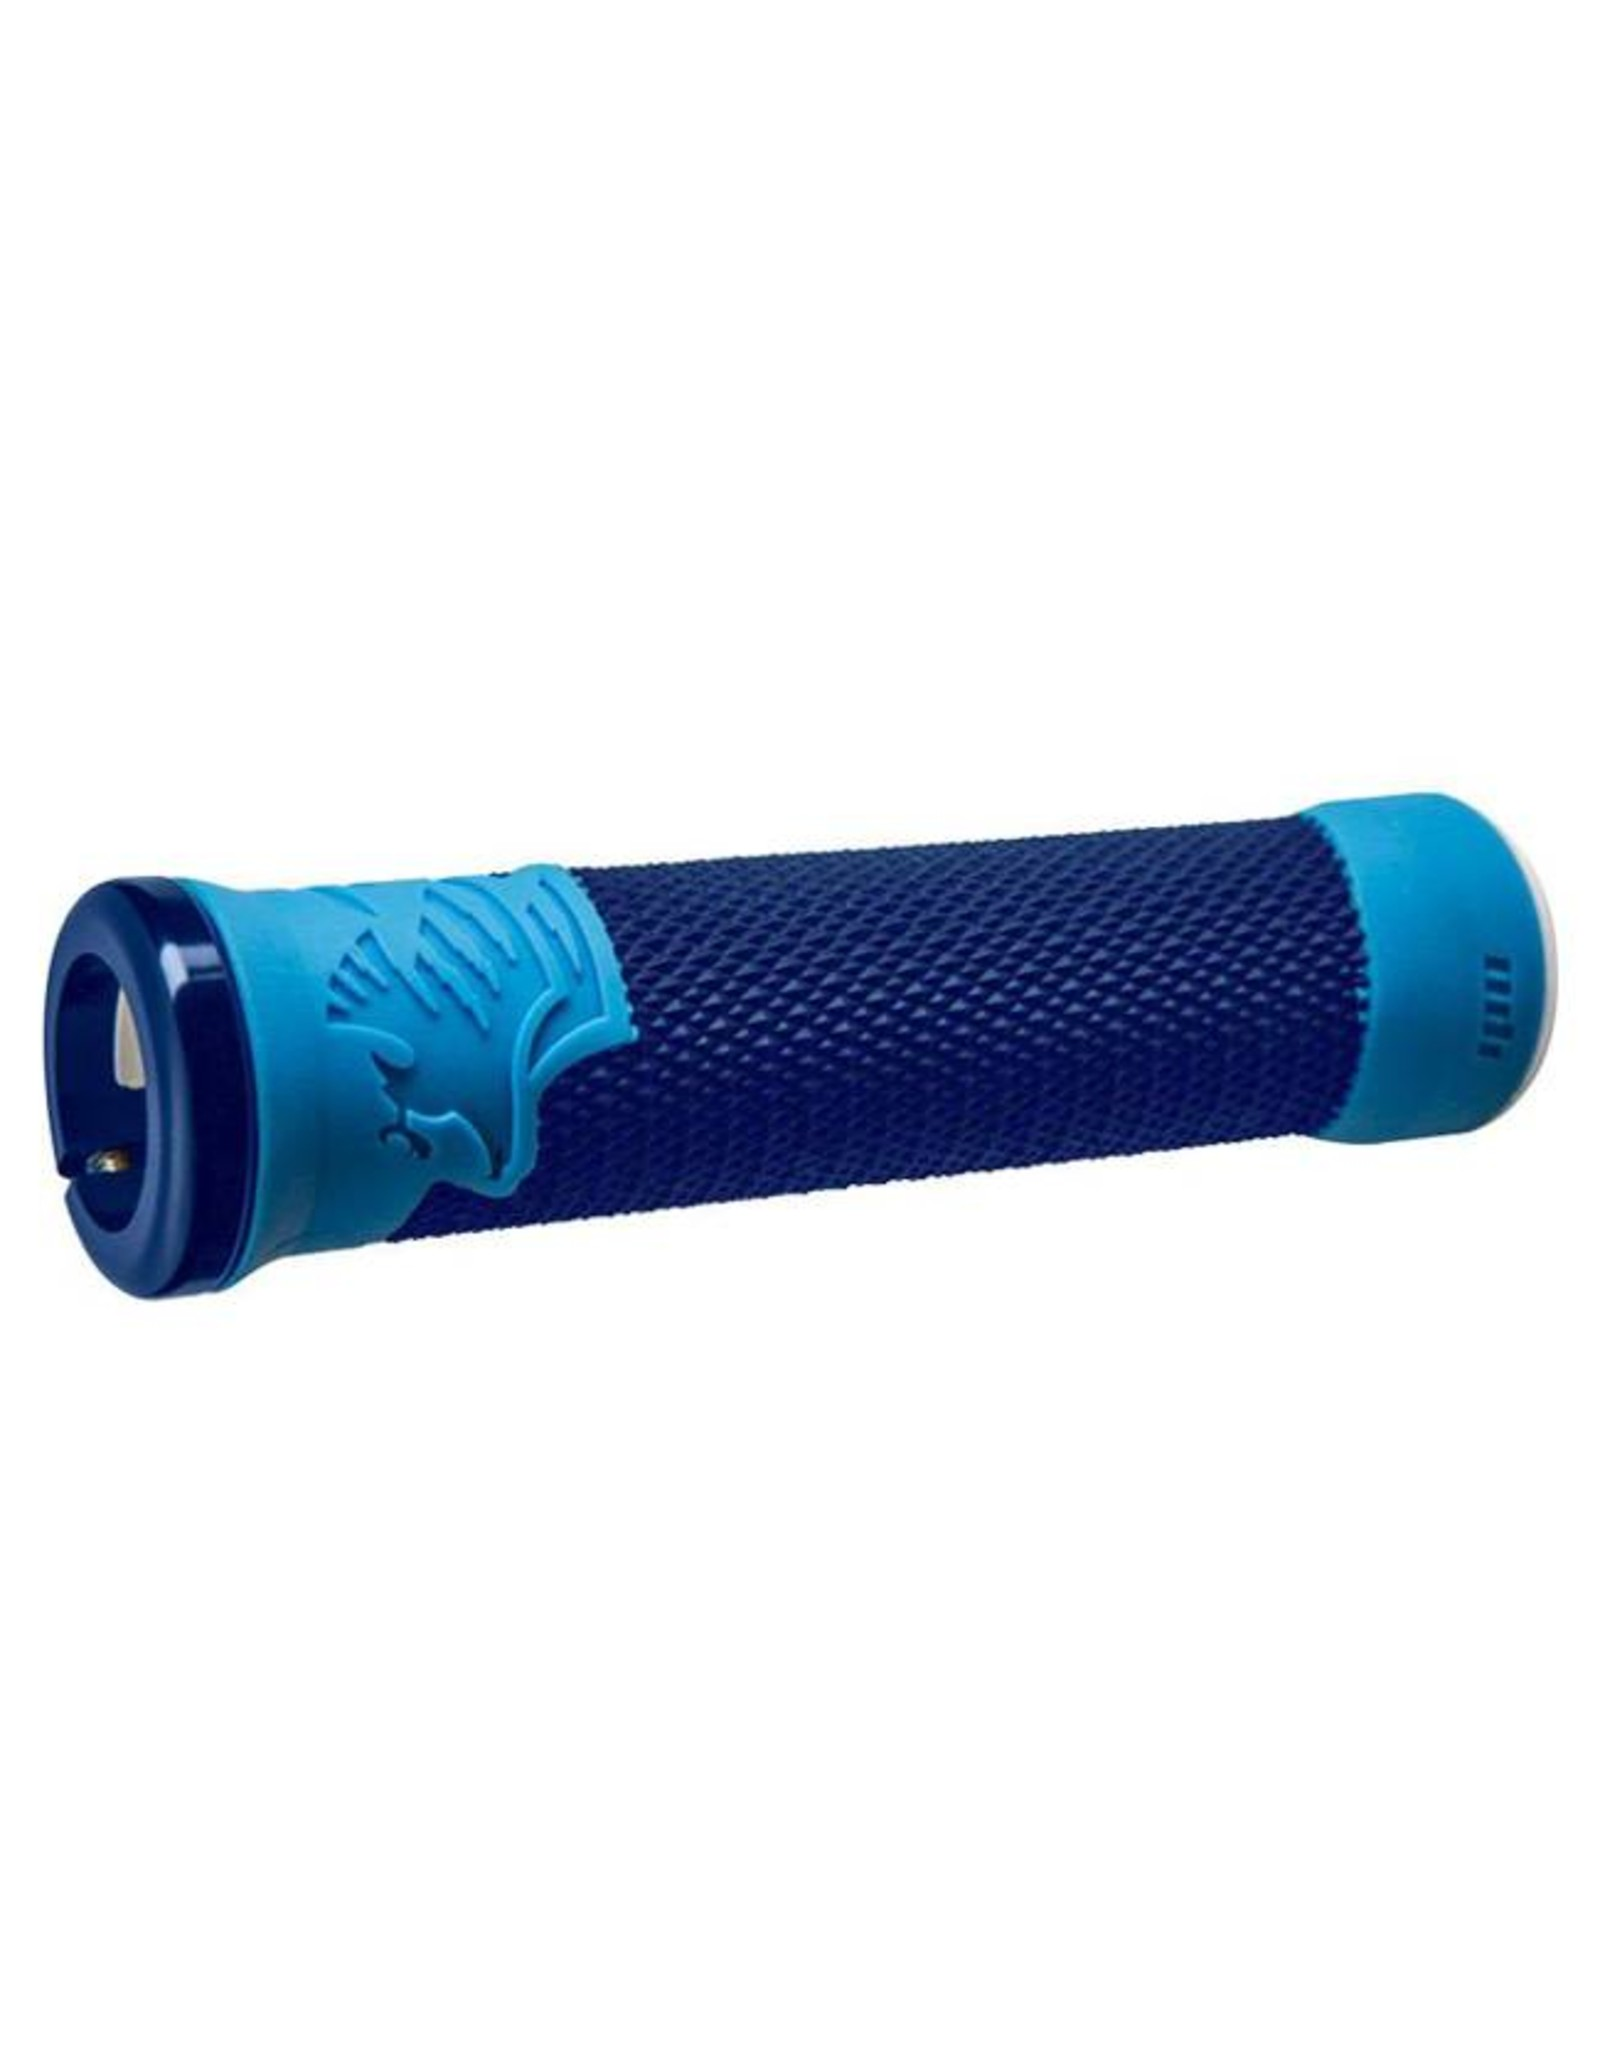 ODI ODI AG2 Lock-On Grips Blue/Light Blue with Blue Clamps